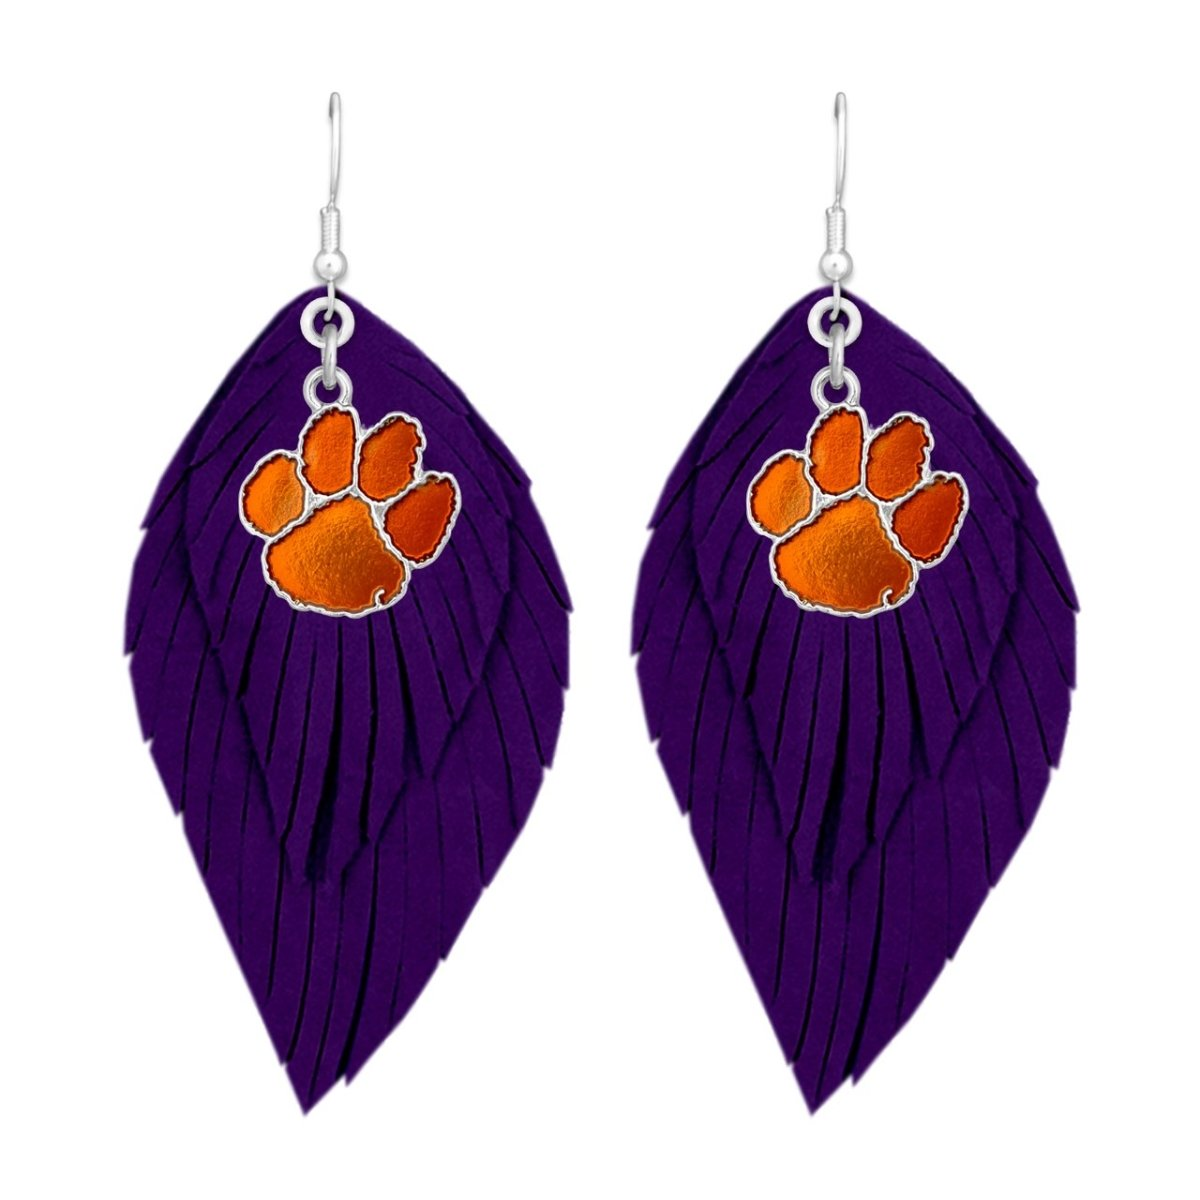 Clemson Boho Earrings - Mr. Knickerbocker